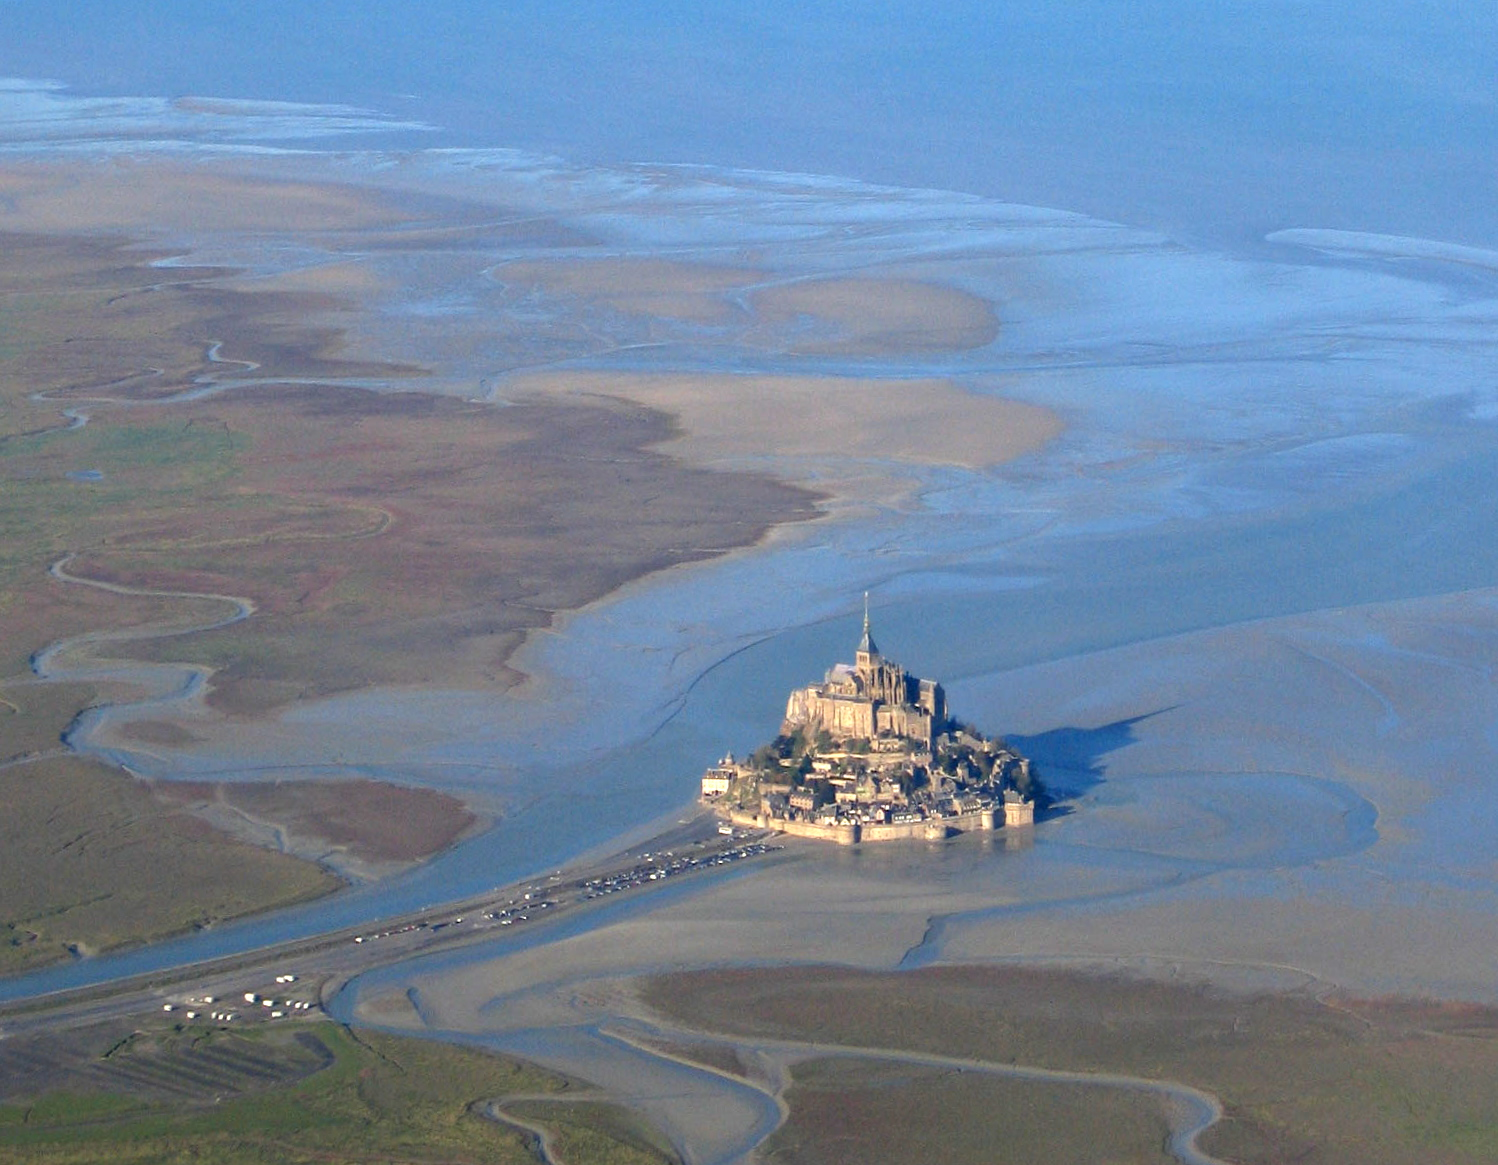 Aerial photograph of Mont Saint-Michel at low tide. Photo taken on November 20, 2005.